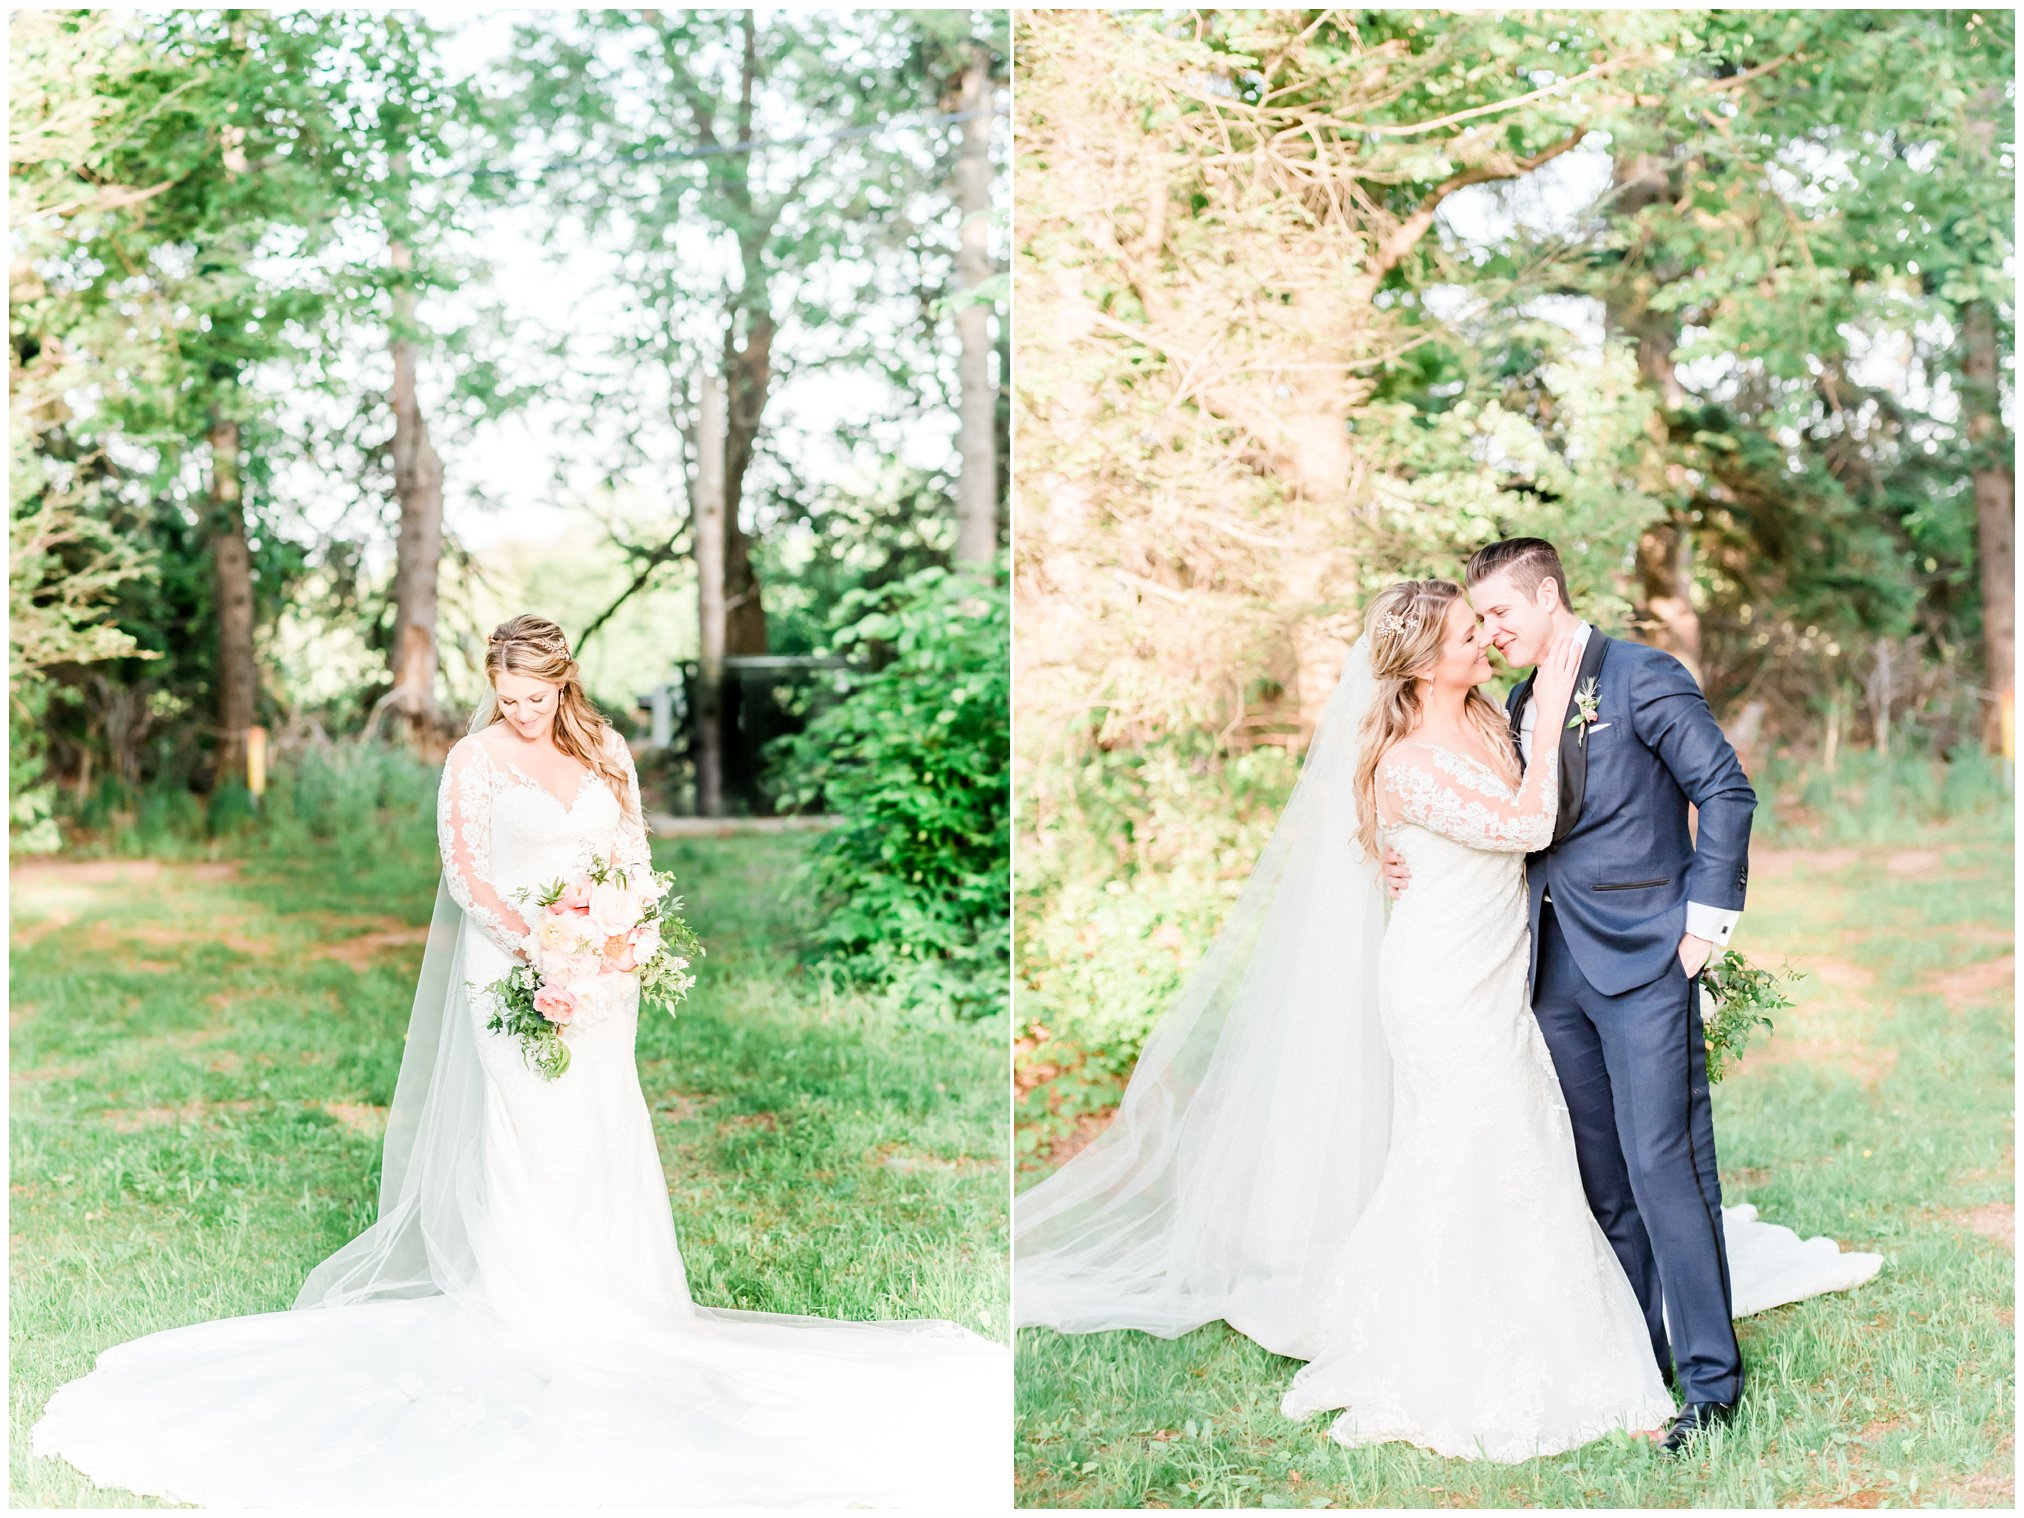 bride and groom portraits at the ryland inn, whitehouse station nj